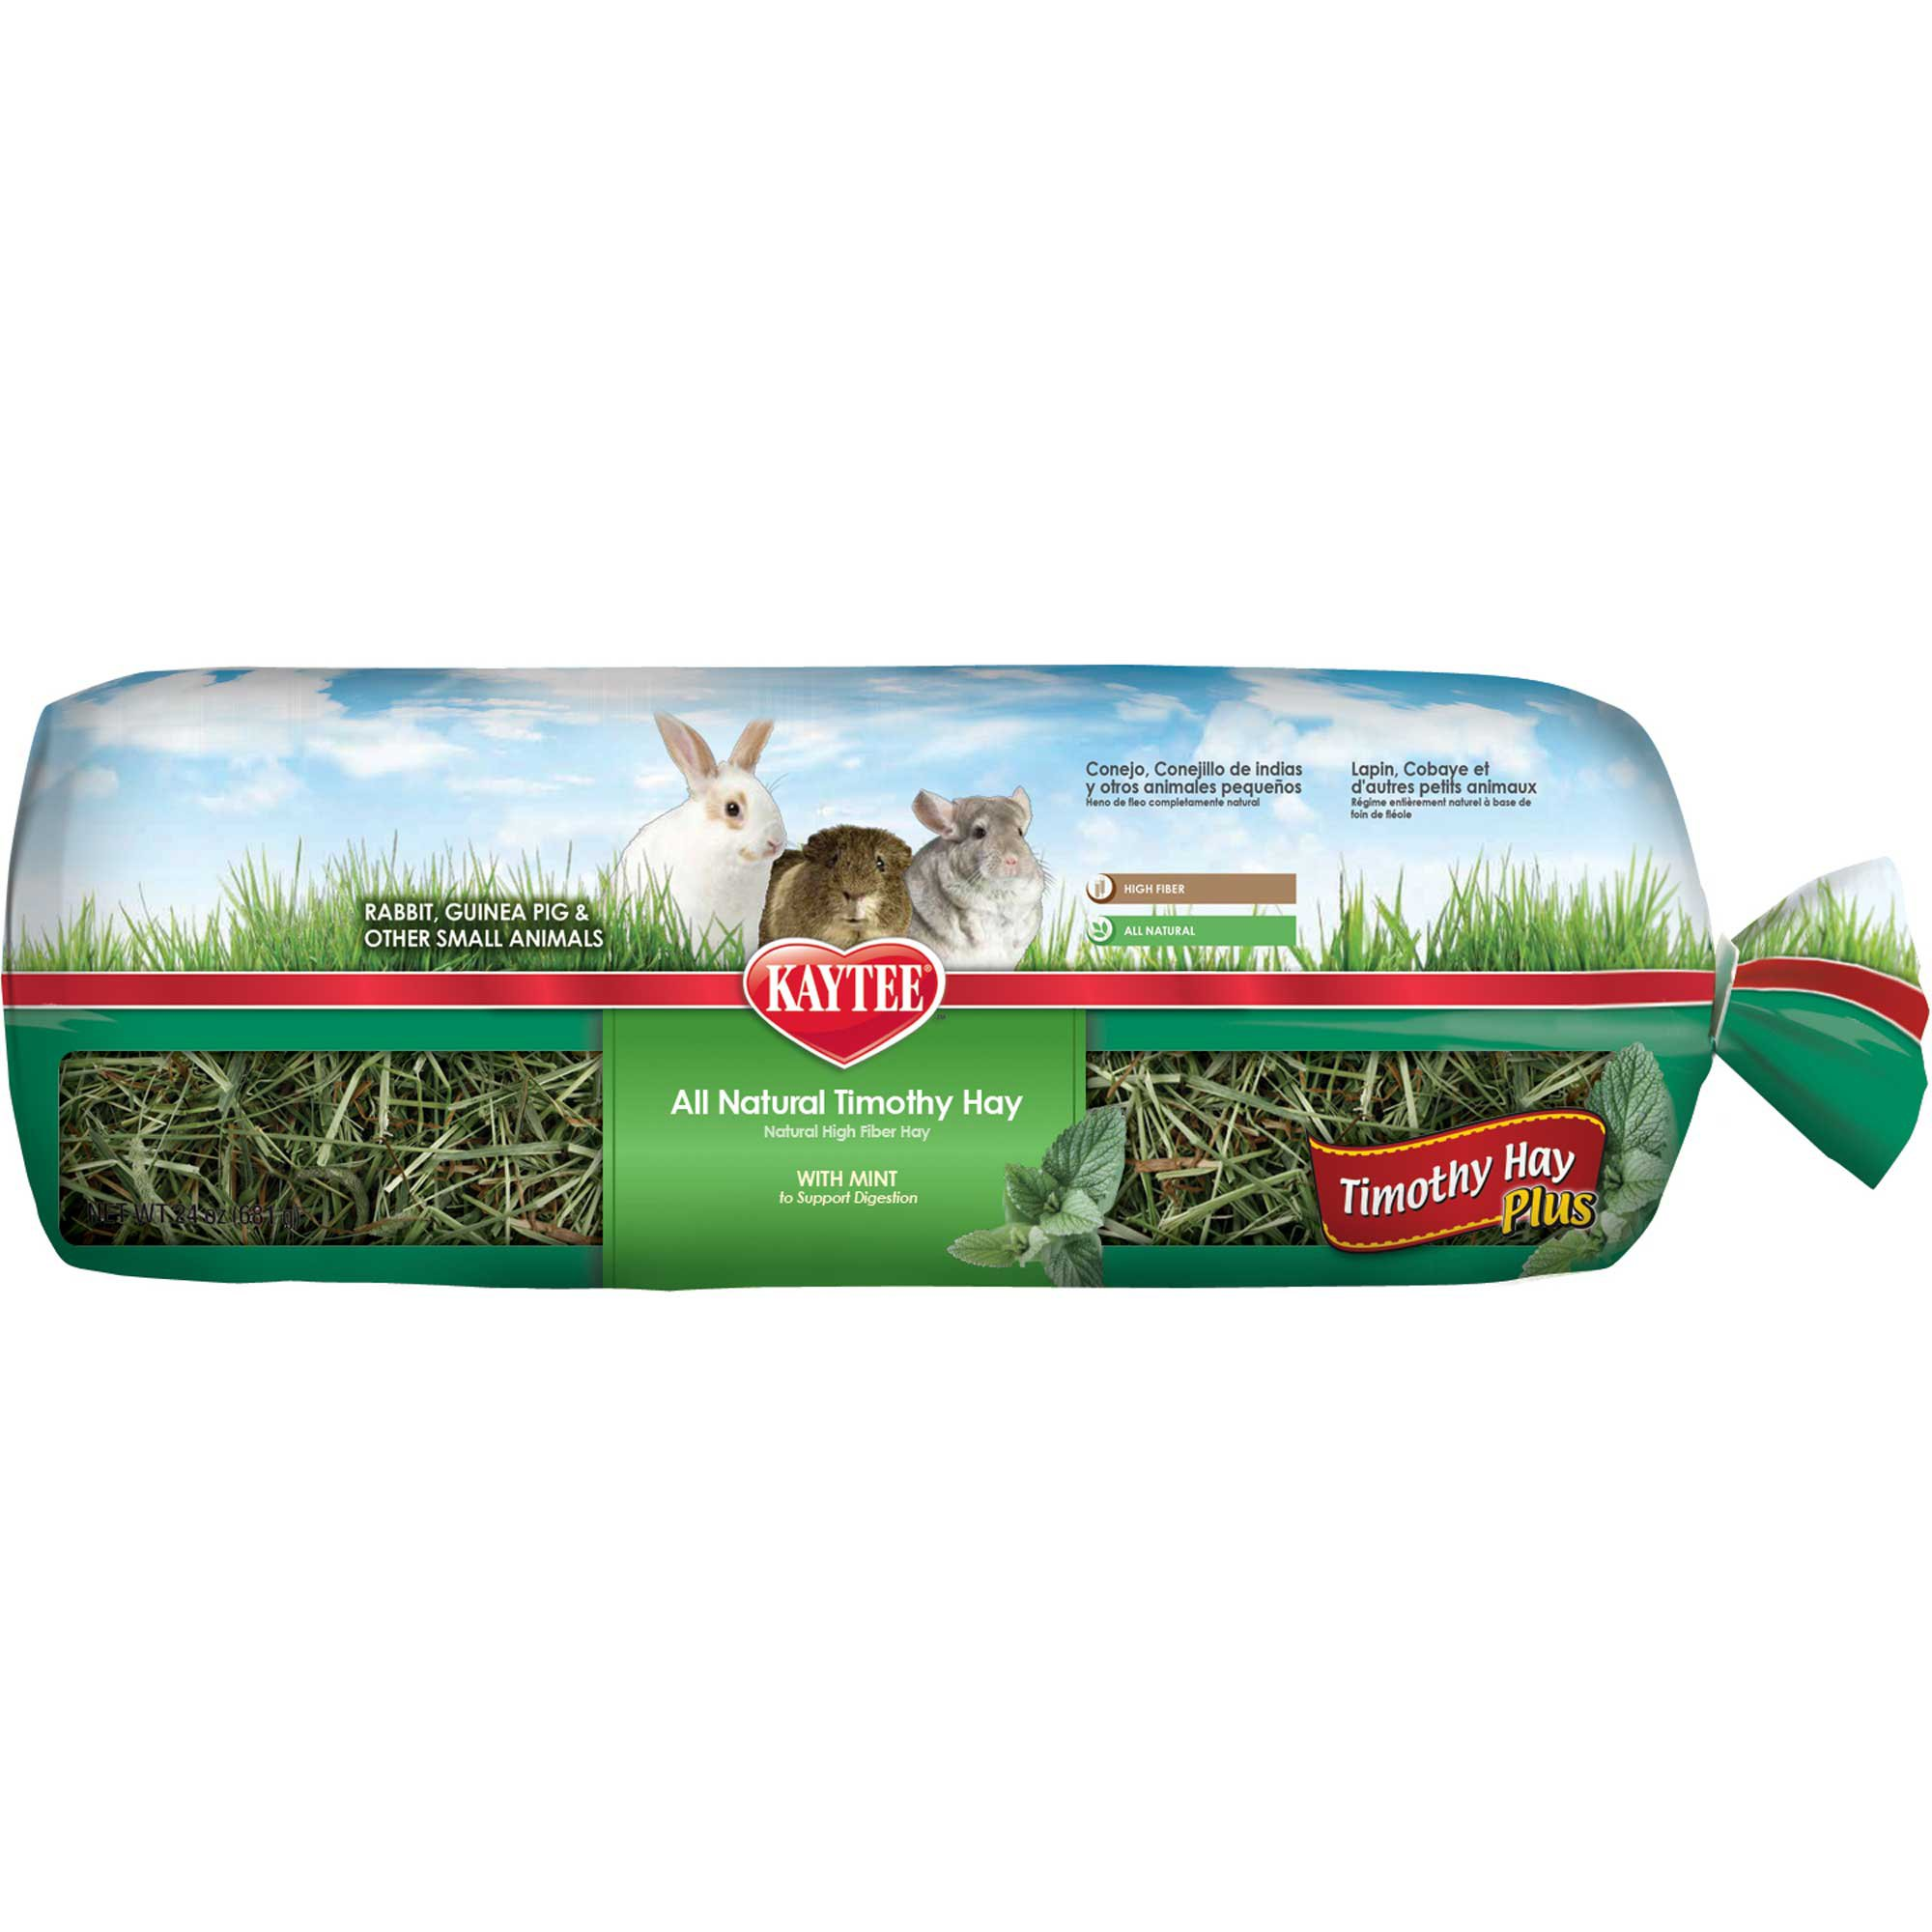 Kaytee Timothy Hay Plus Mint For Rabbits & Small Animals   Petco at Petco in Braselton, GA   Tuggl